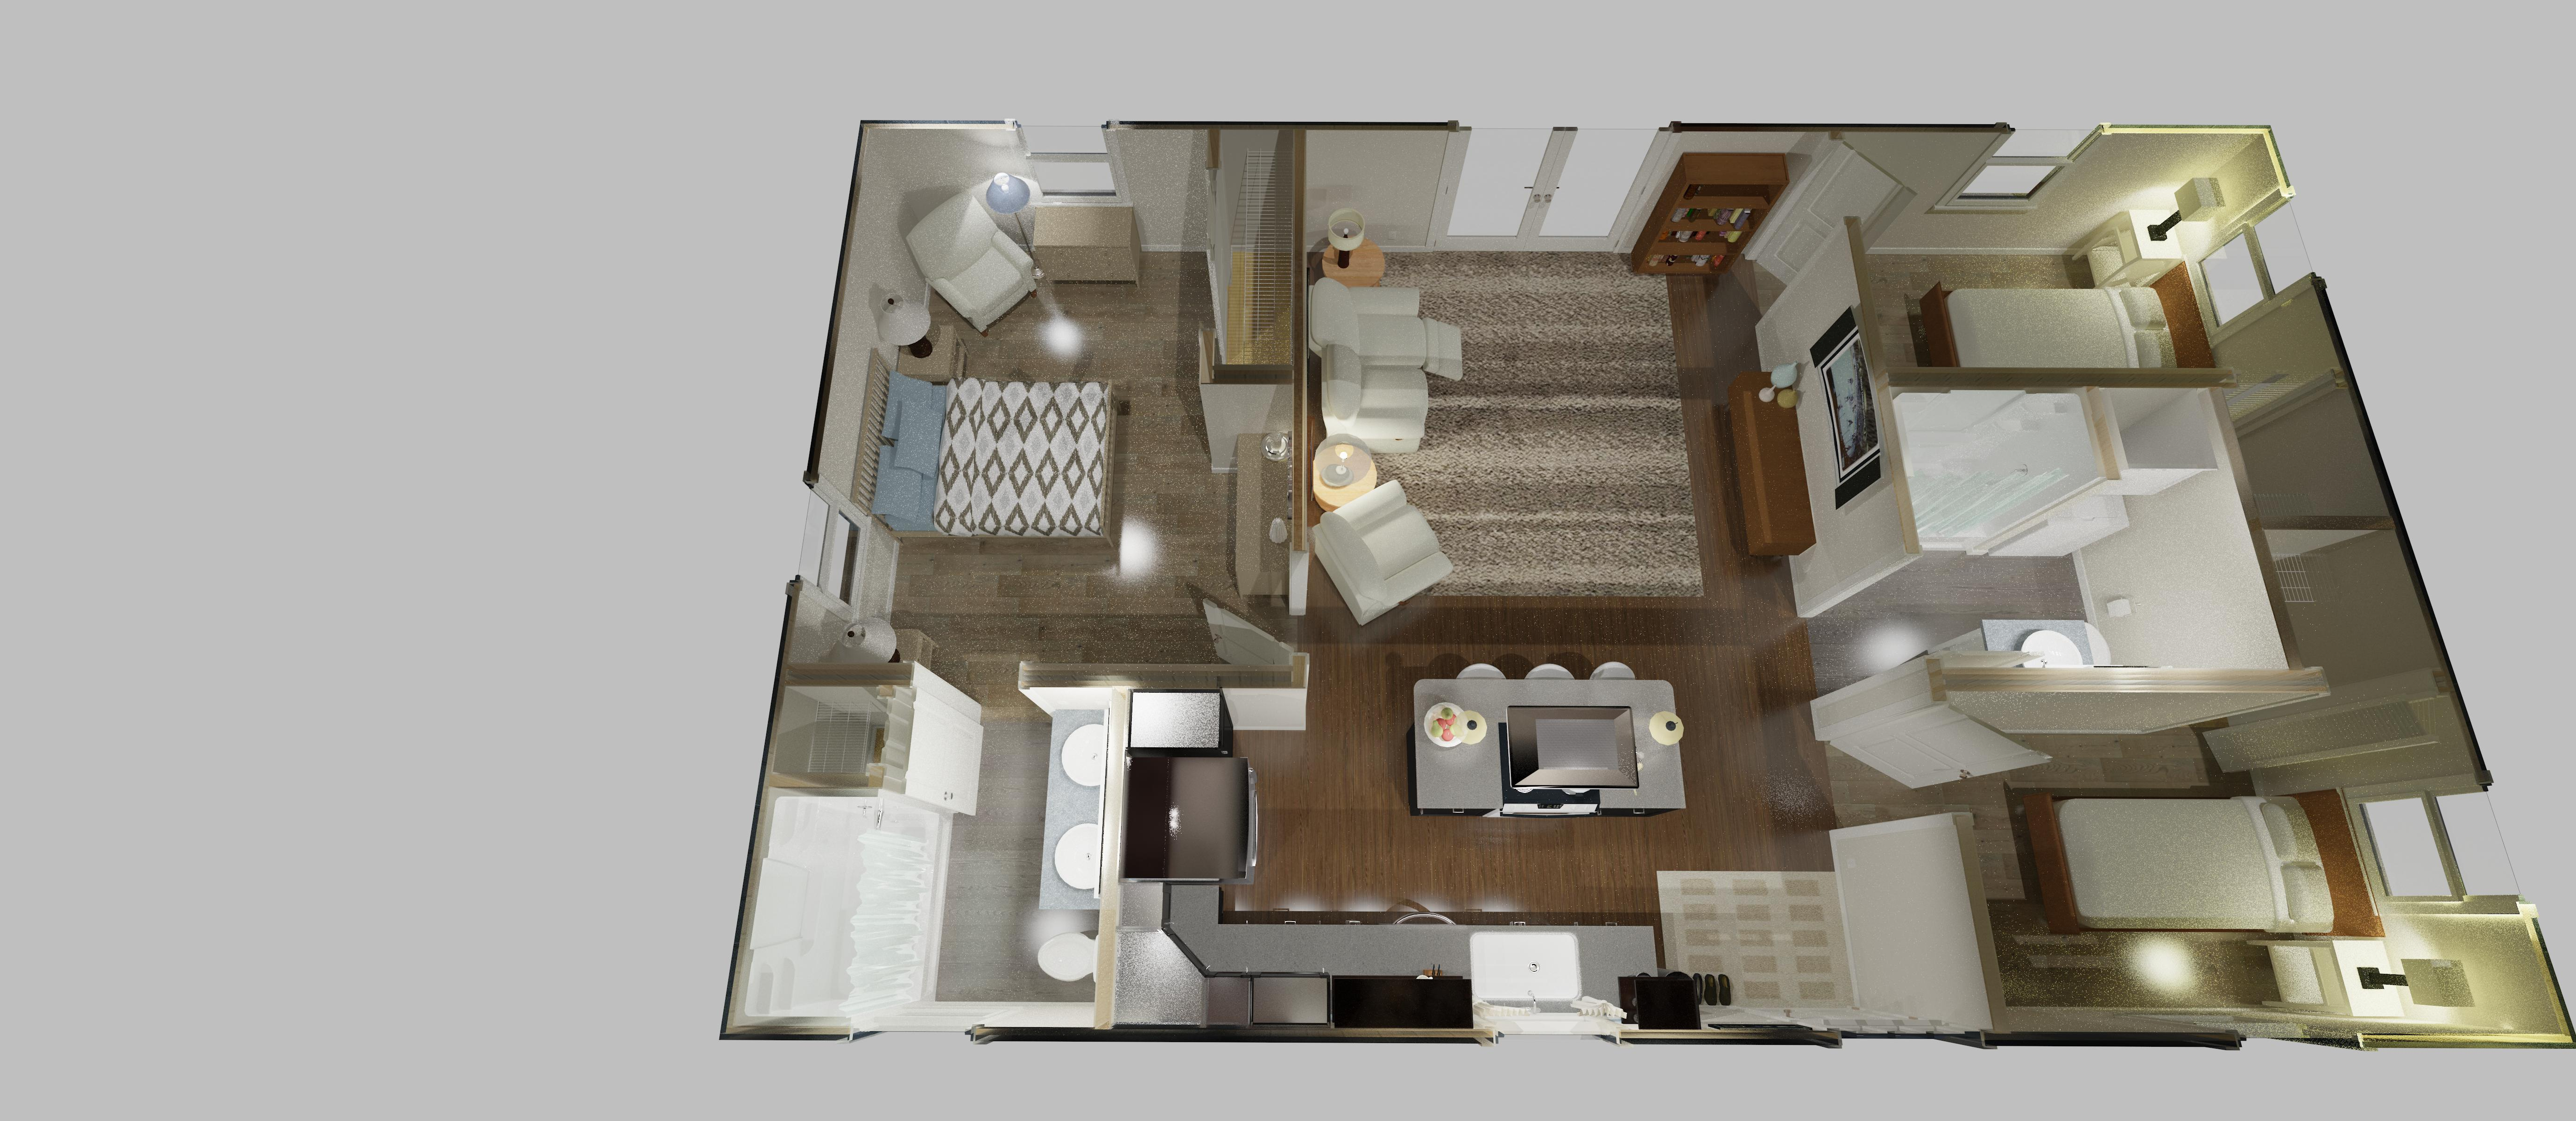 960 sq ft home